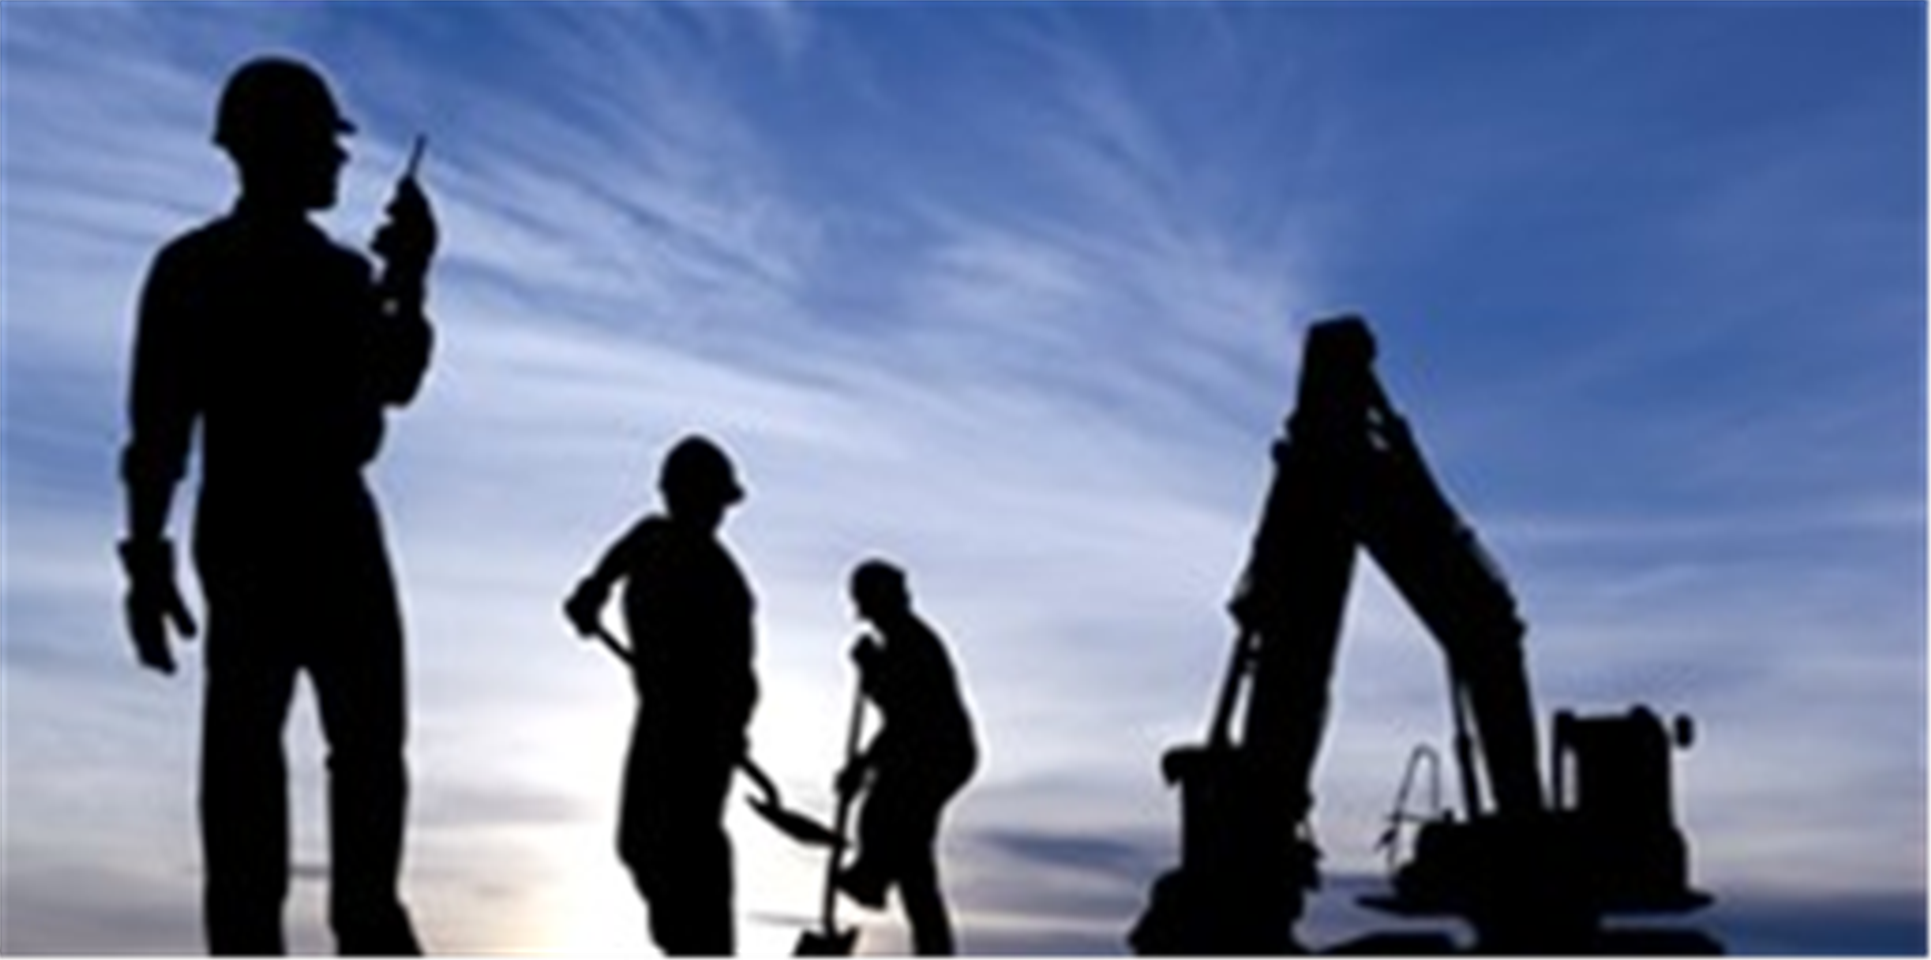 Silhouettes of construction workers and backhoe